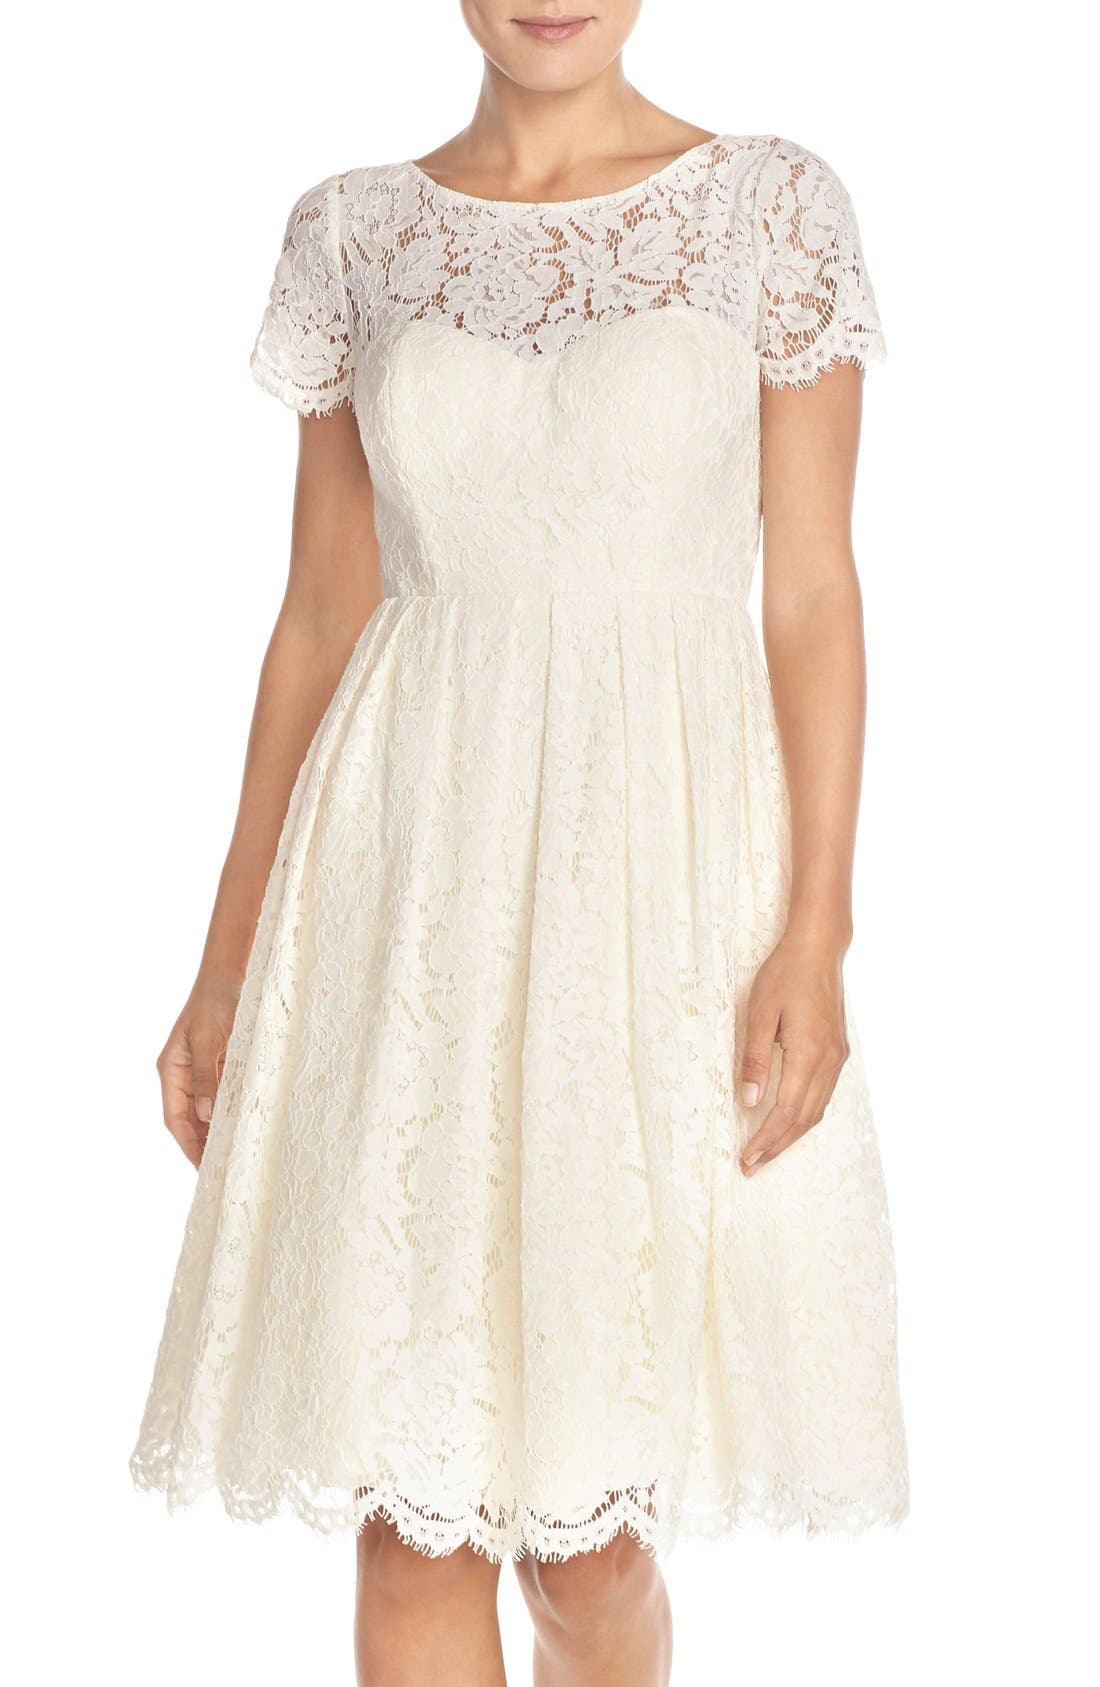 Main Image - Jenny Yoo 'Cadence' Keyhole Back Lace Fit & Flare Dress